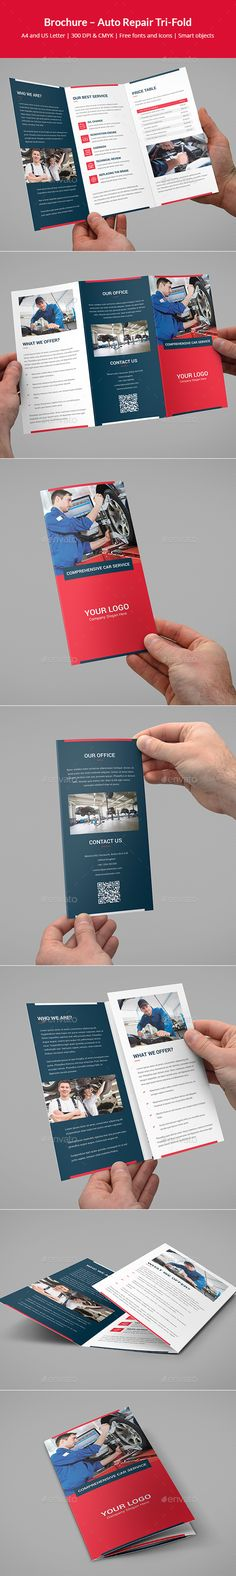 Brochure – Auto Repair Tri-Fold - #Corporate #Brochures Download here: https://graphicriver.net/item/brochure-auto-repair-trifold/19532311?ref=alena994